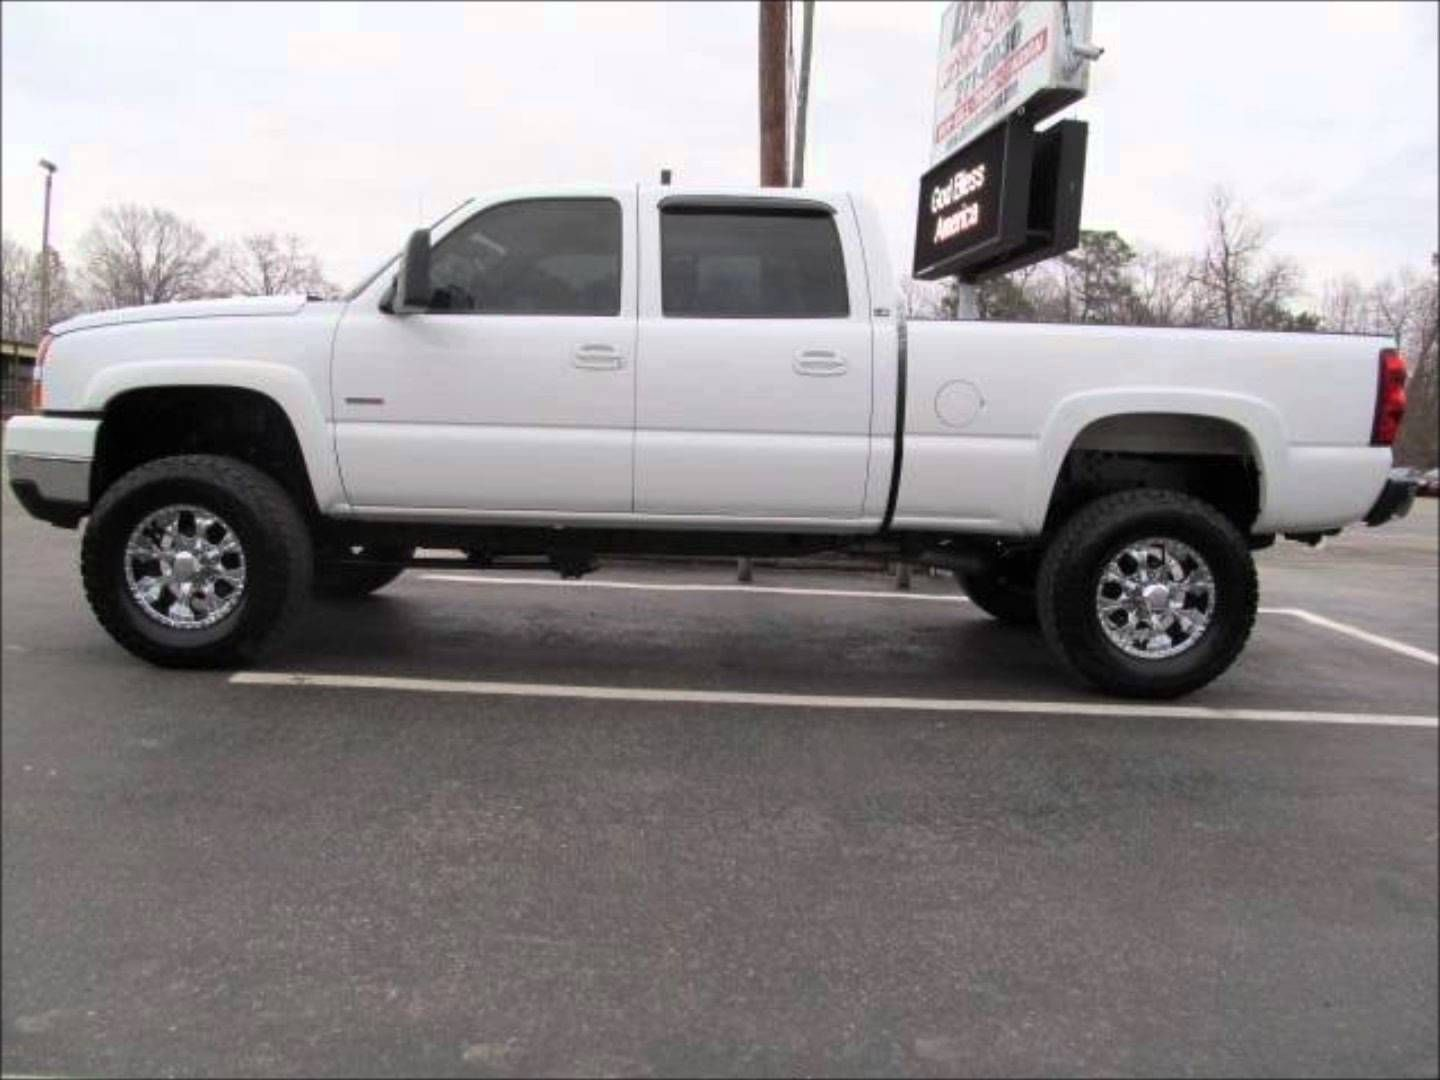 2005 Chevy Silverado 2500 Diesel Lifted Truck For Sale http://www ...